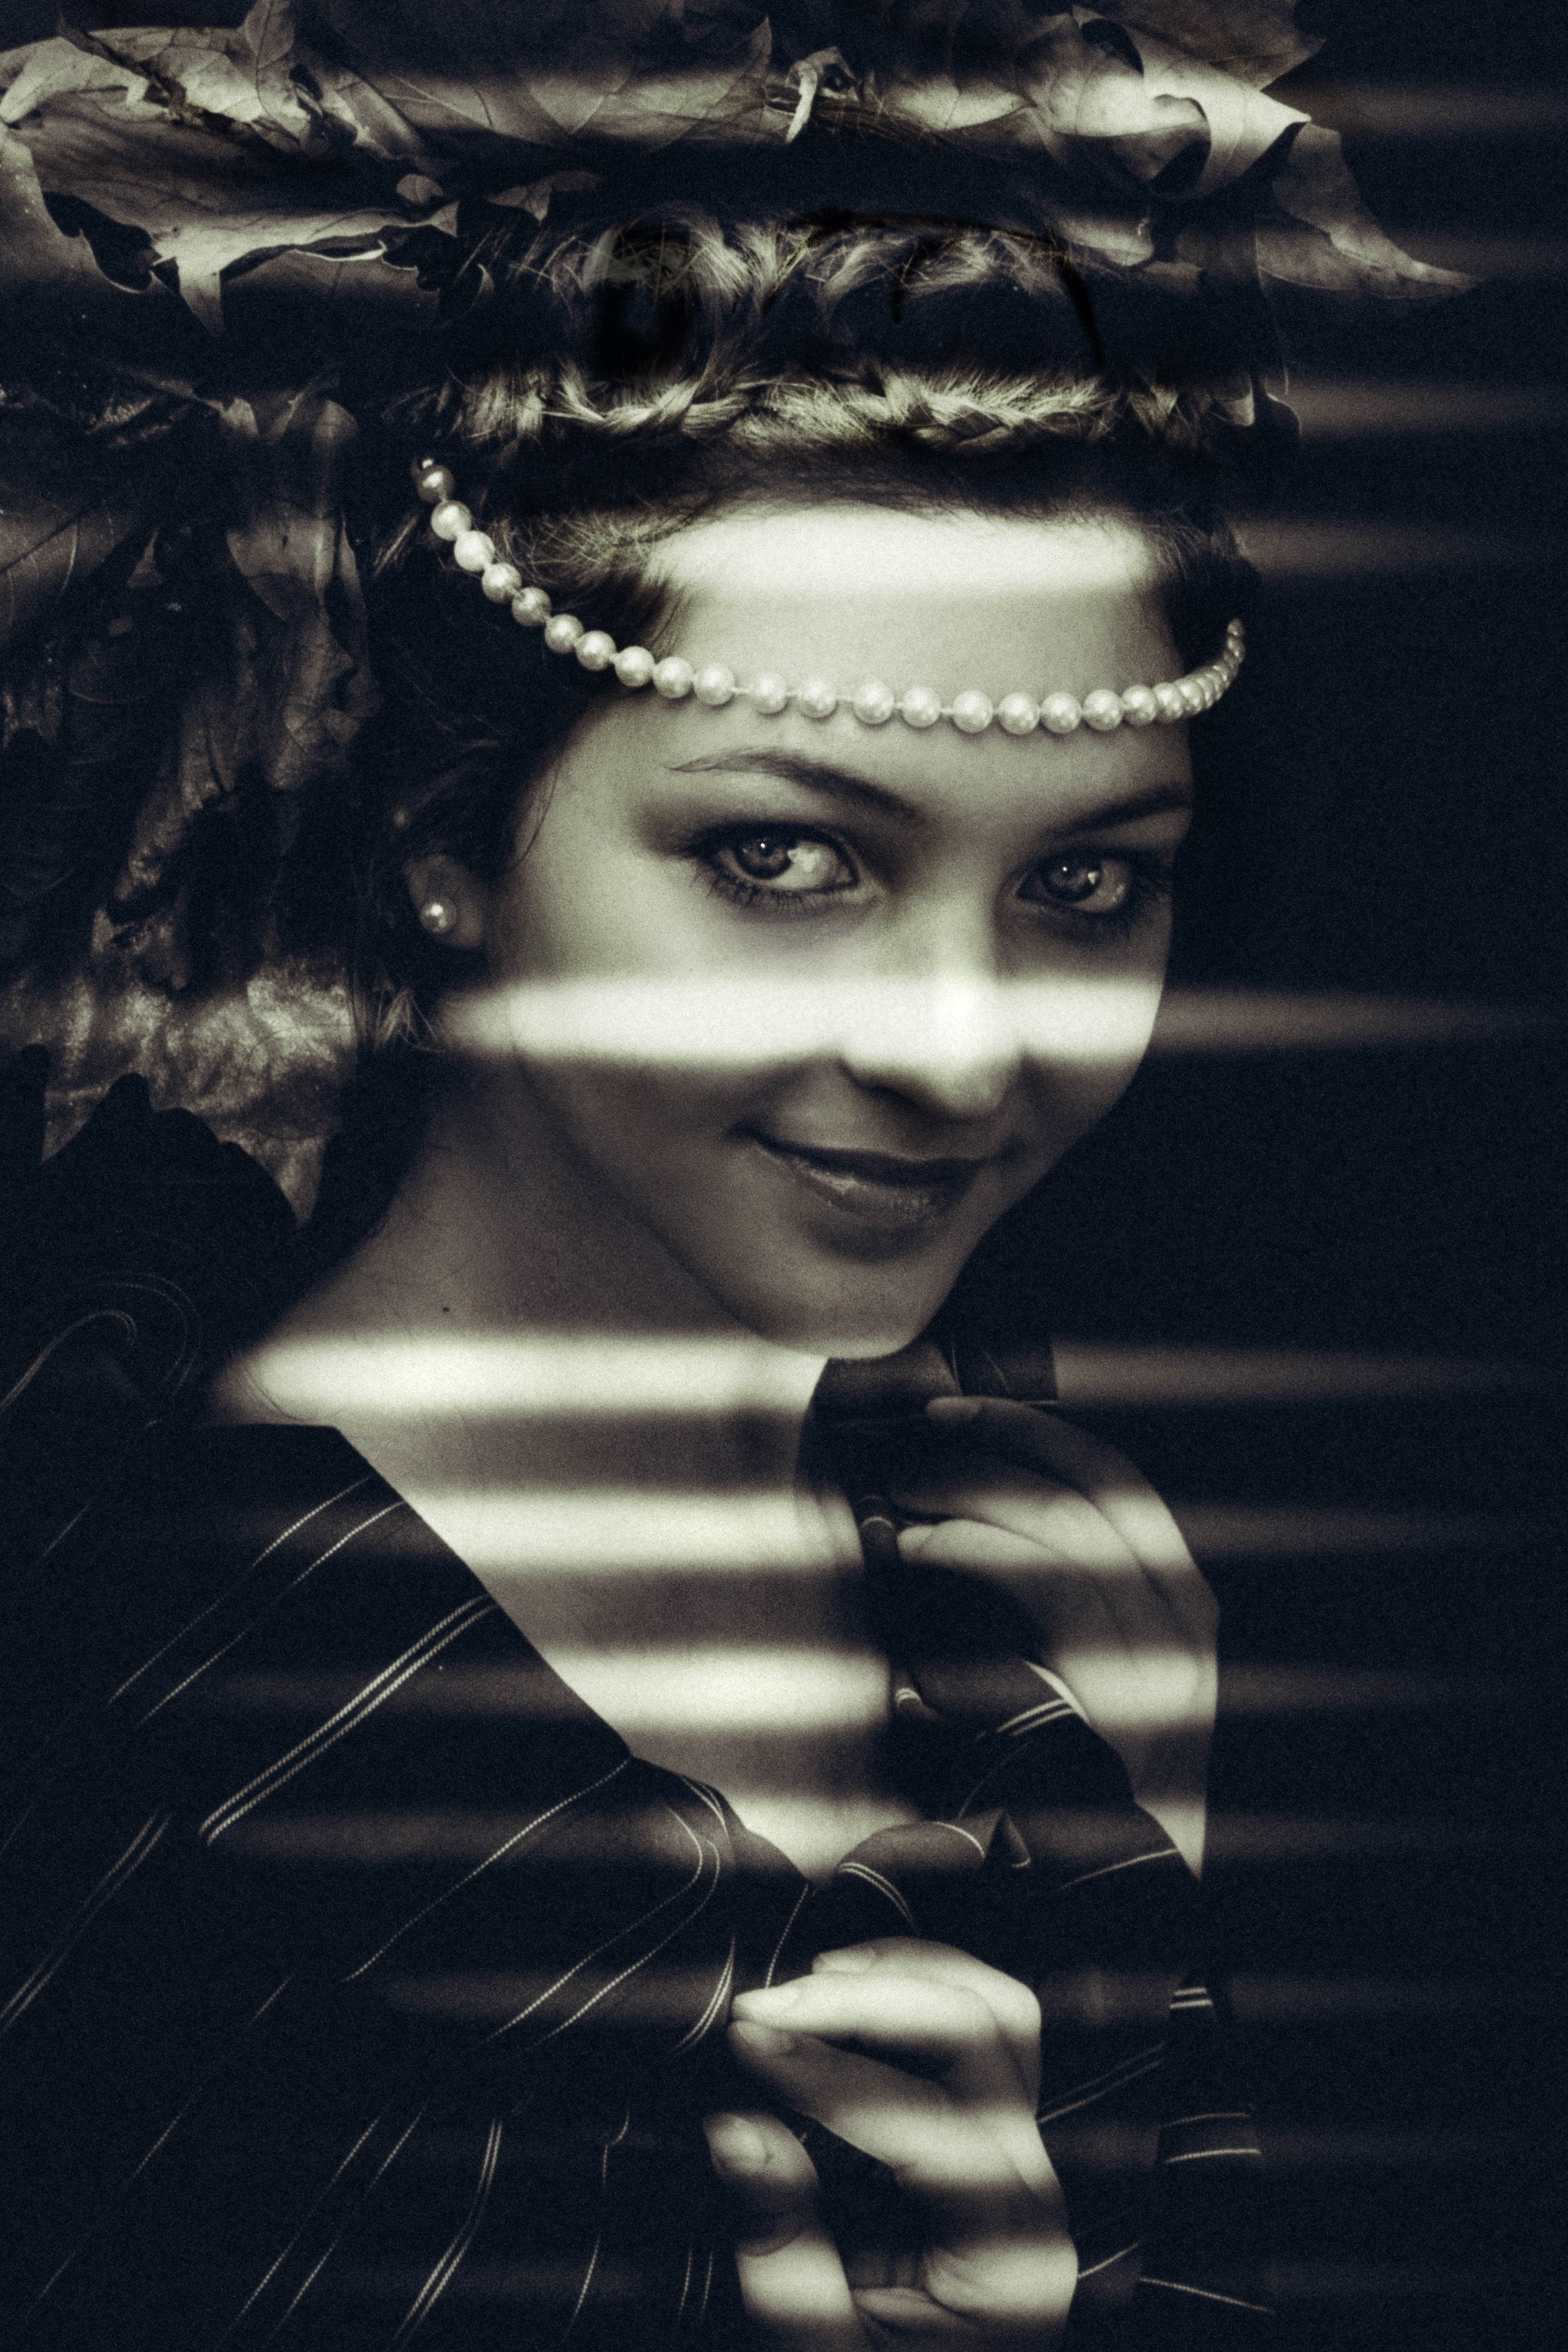 Grayscale Photo of Woman Wearing Pearl Headpiece Inside Dimmed Room